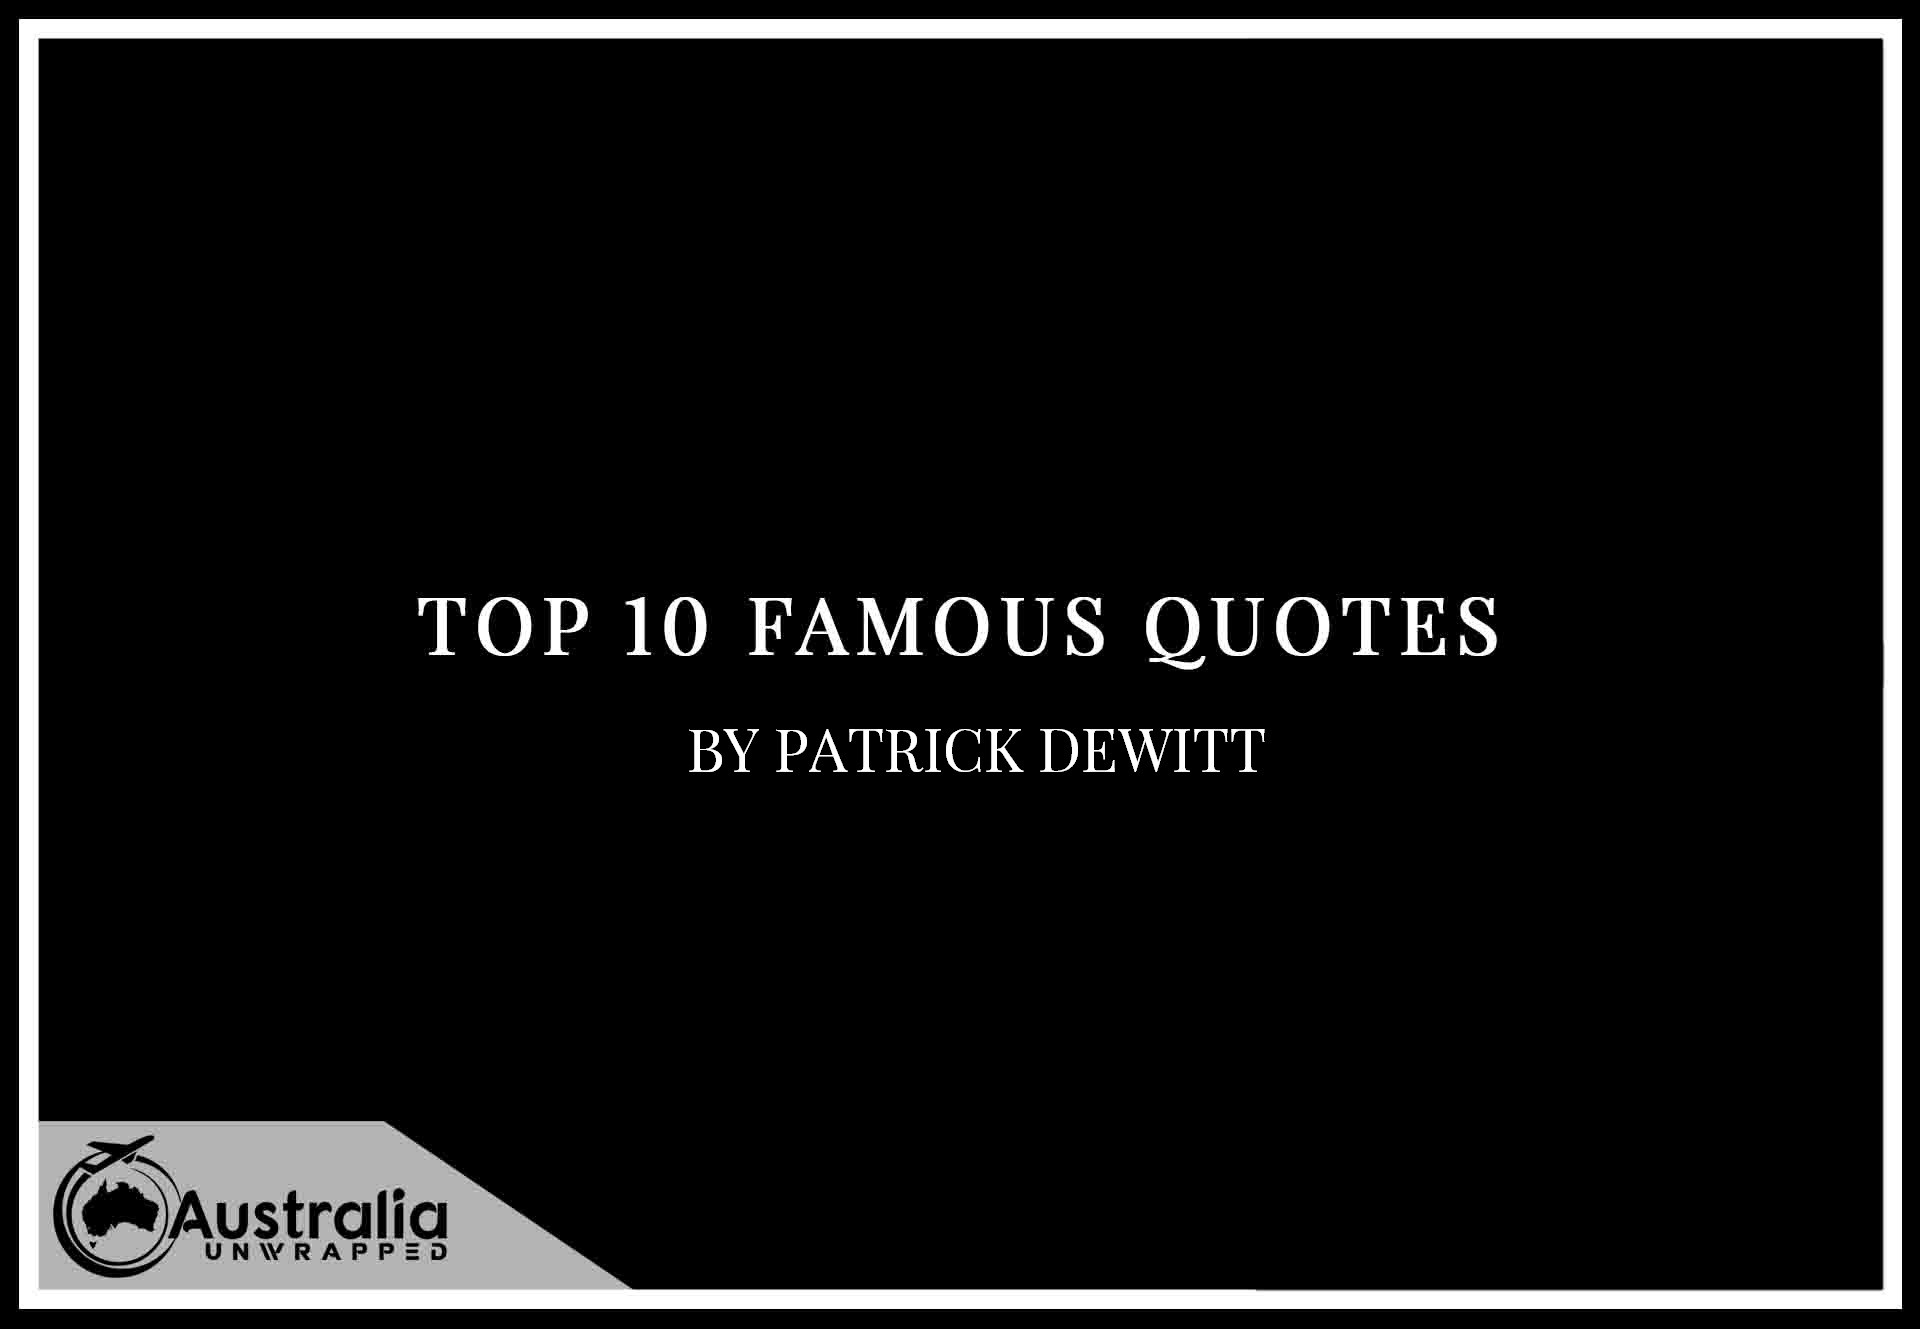 Top 10 Famous Quotes by Author Patrick deWitt